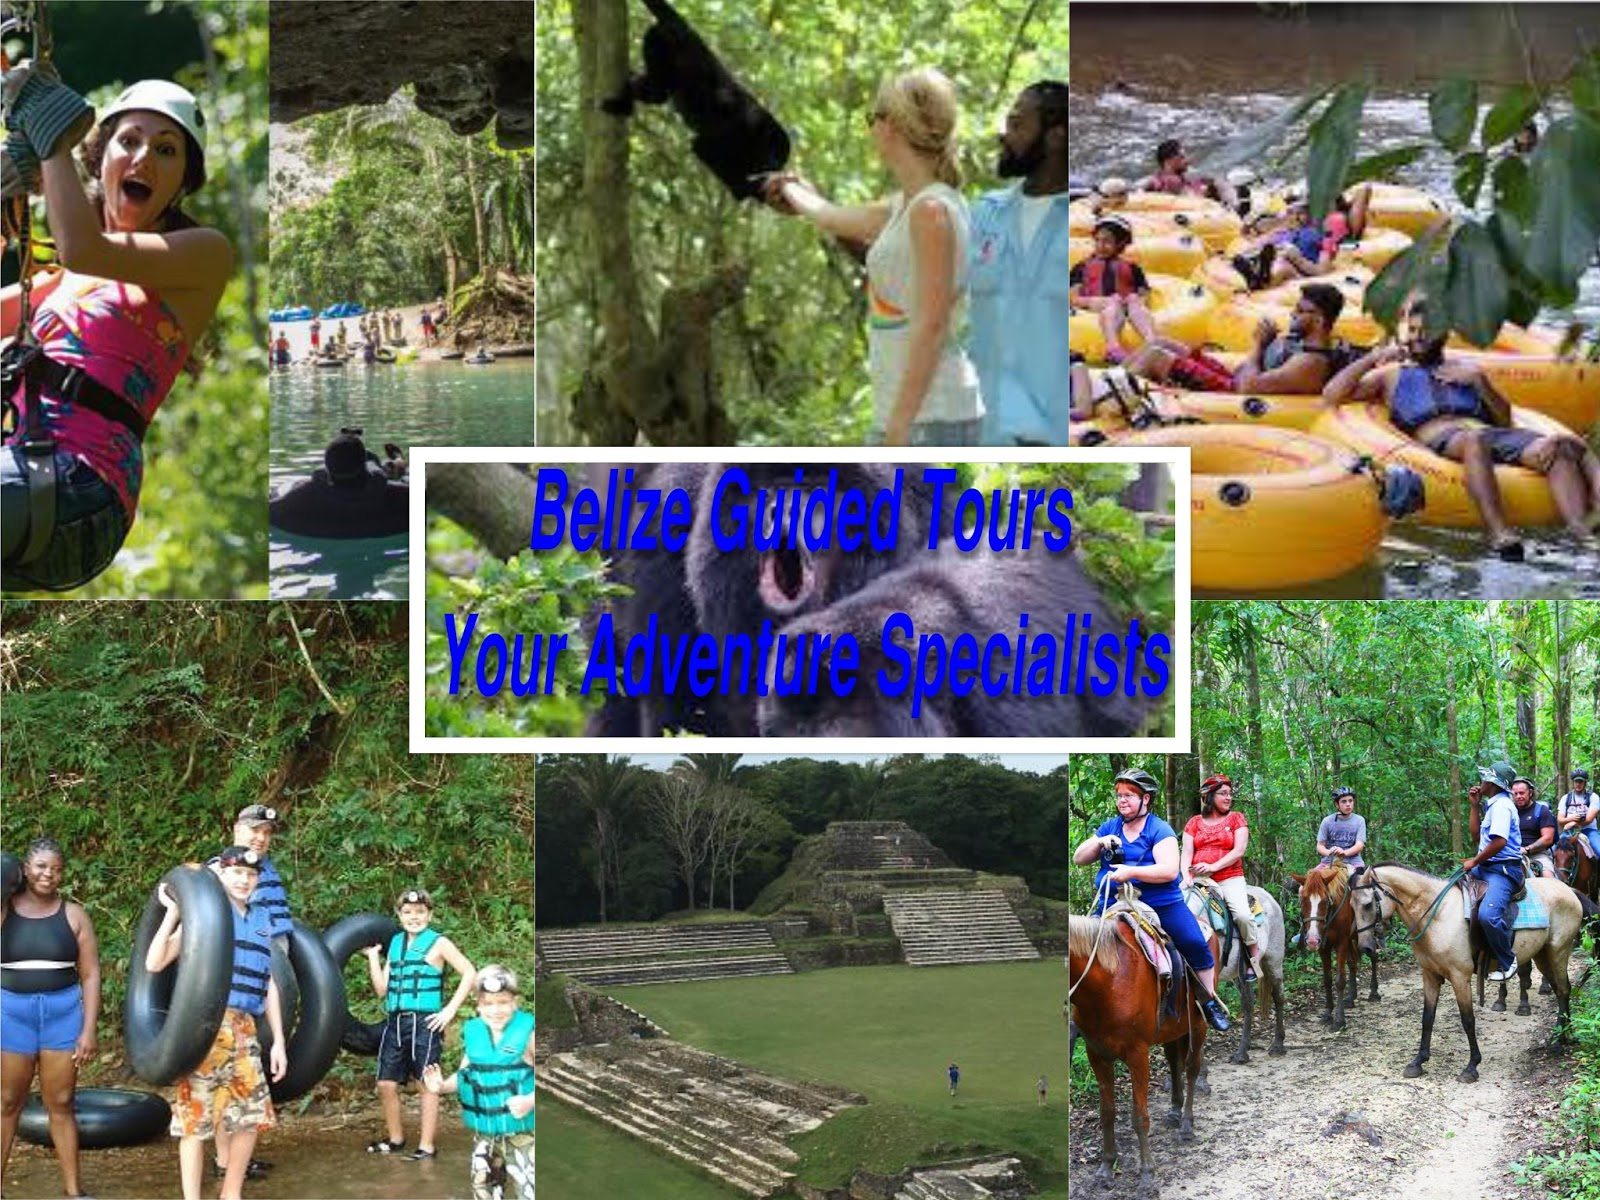 Most Inspiring   Wallpaper Horse Collage - a1guidedtoursbelize  Perfect Image Reference_182071.jpg